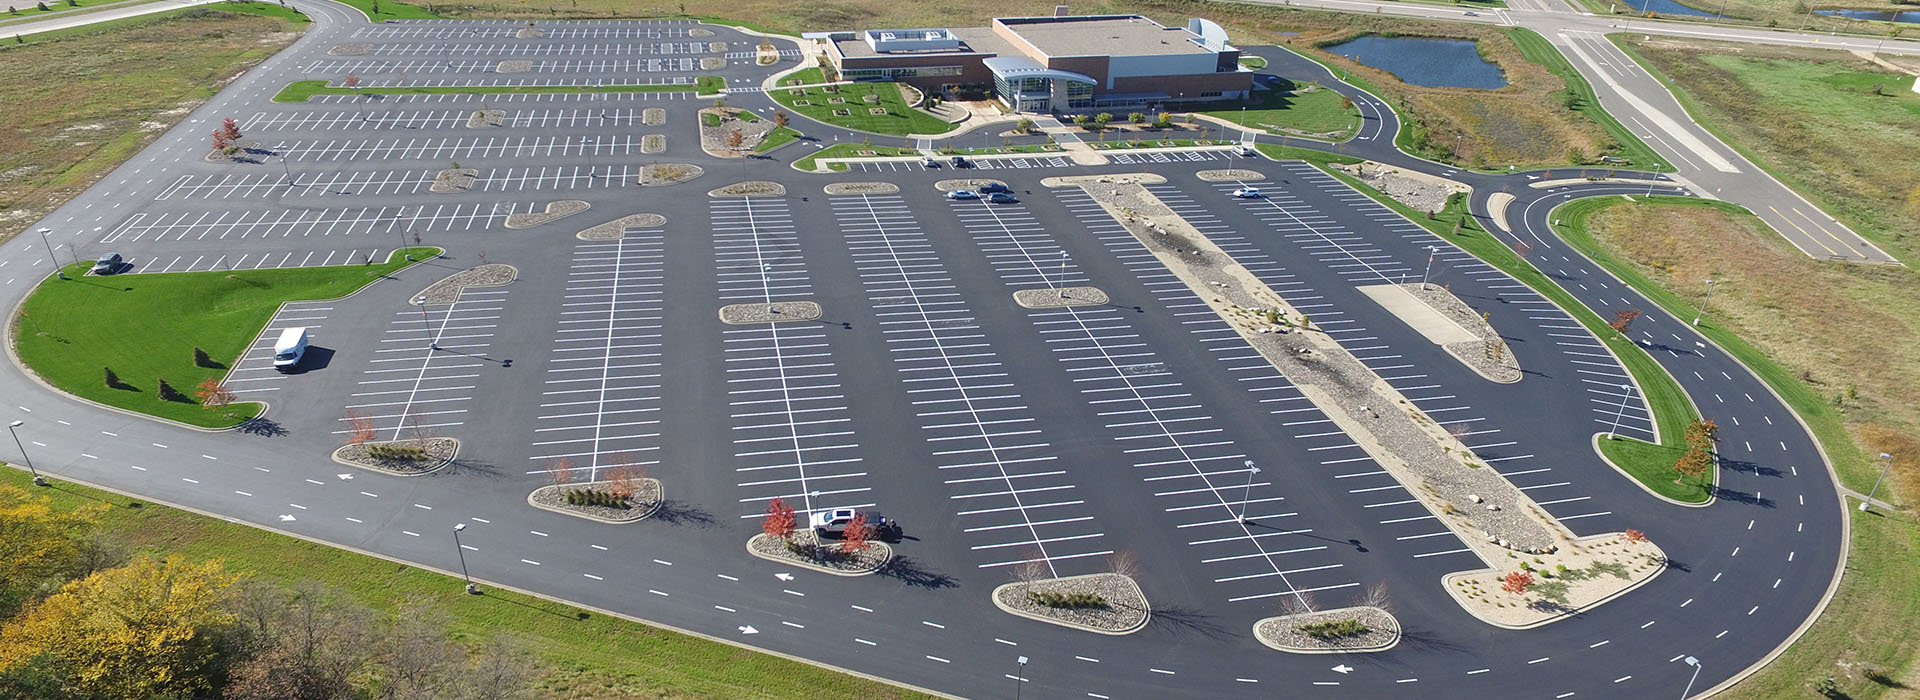 Commercial Asphalt Paving & Sealcoating